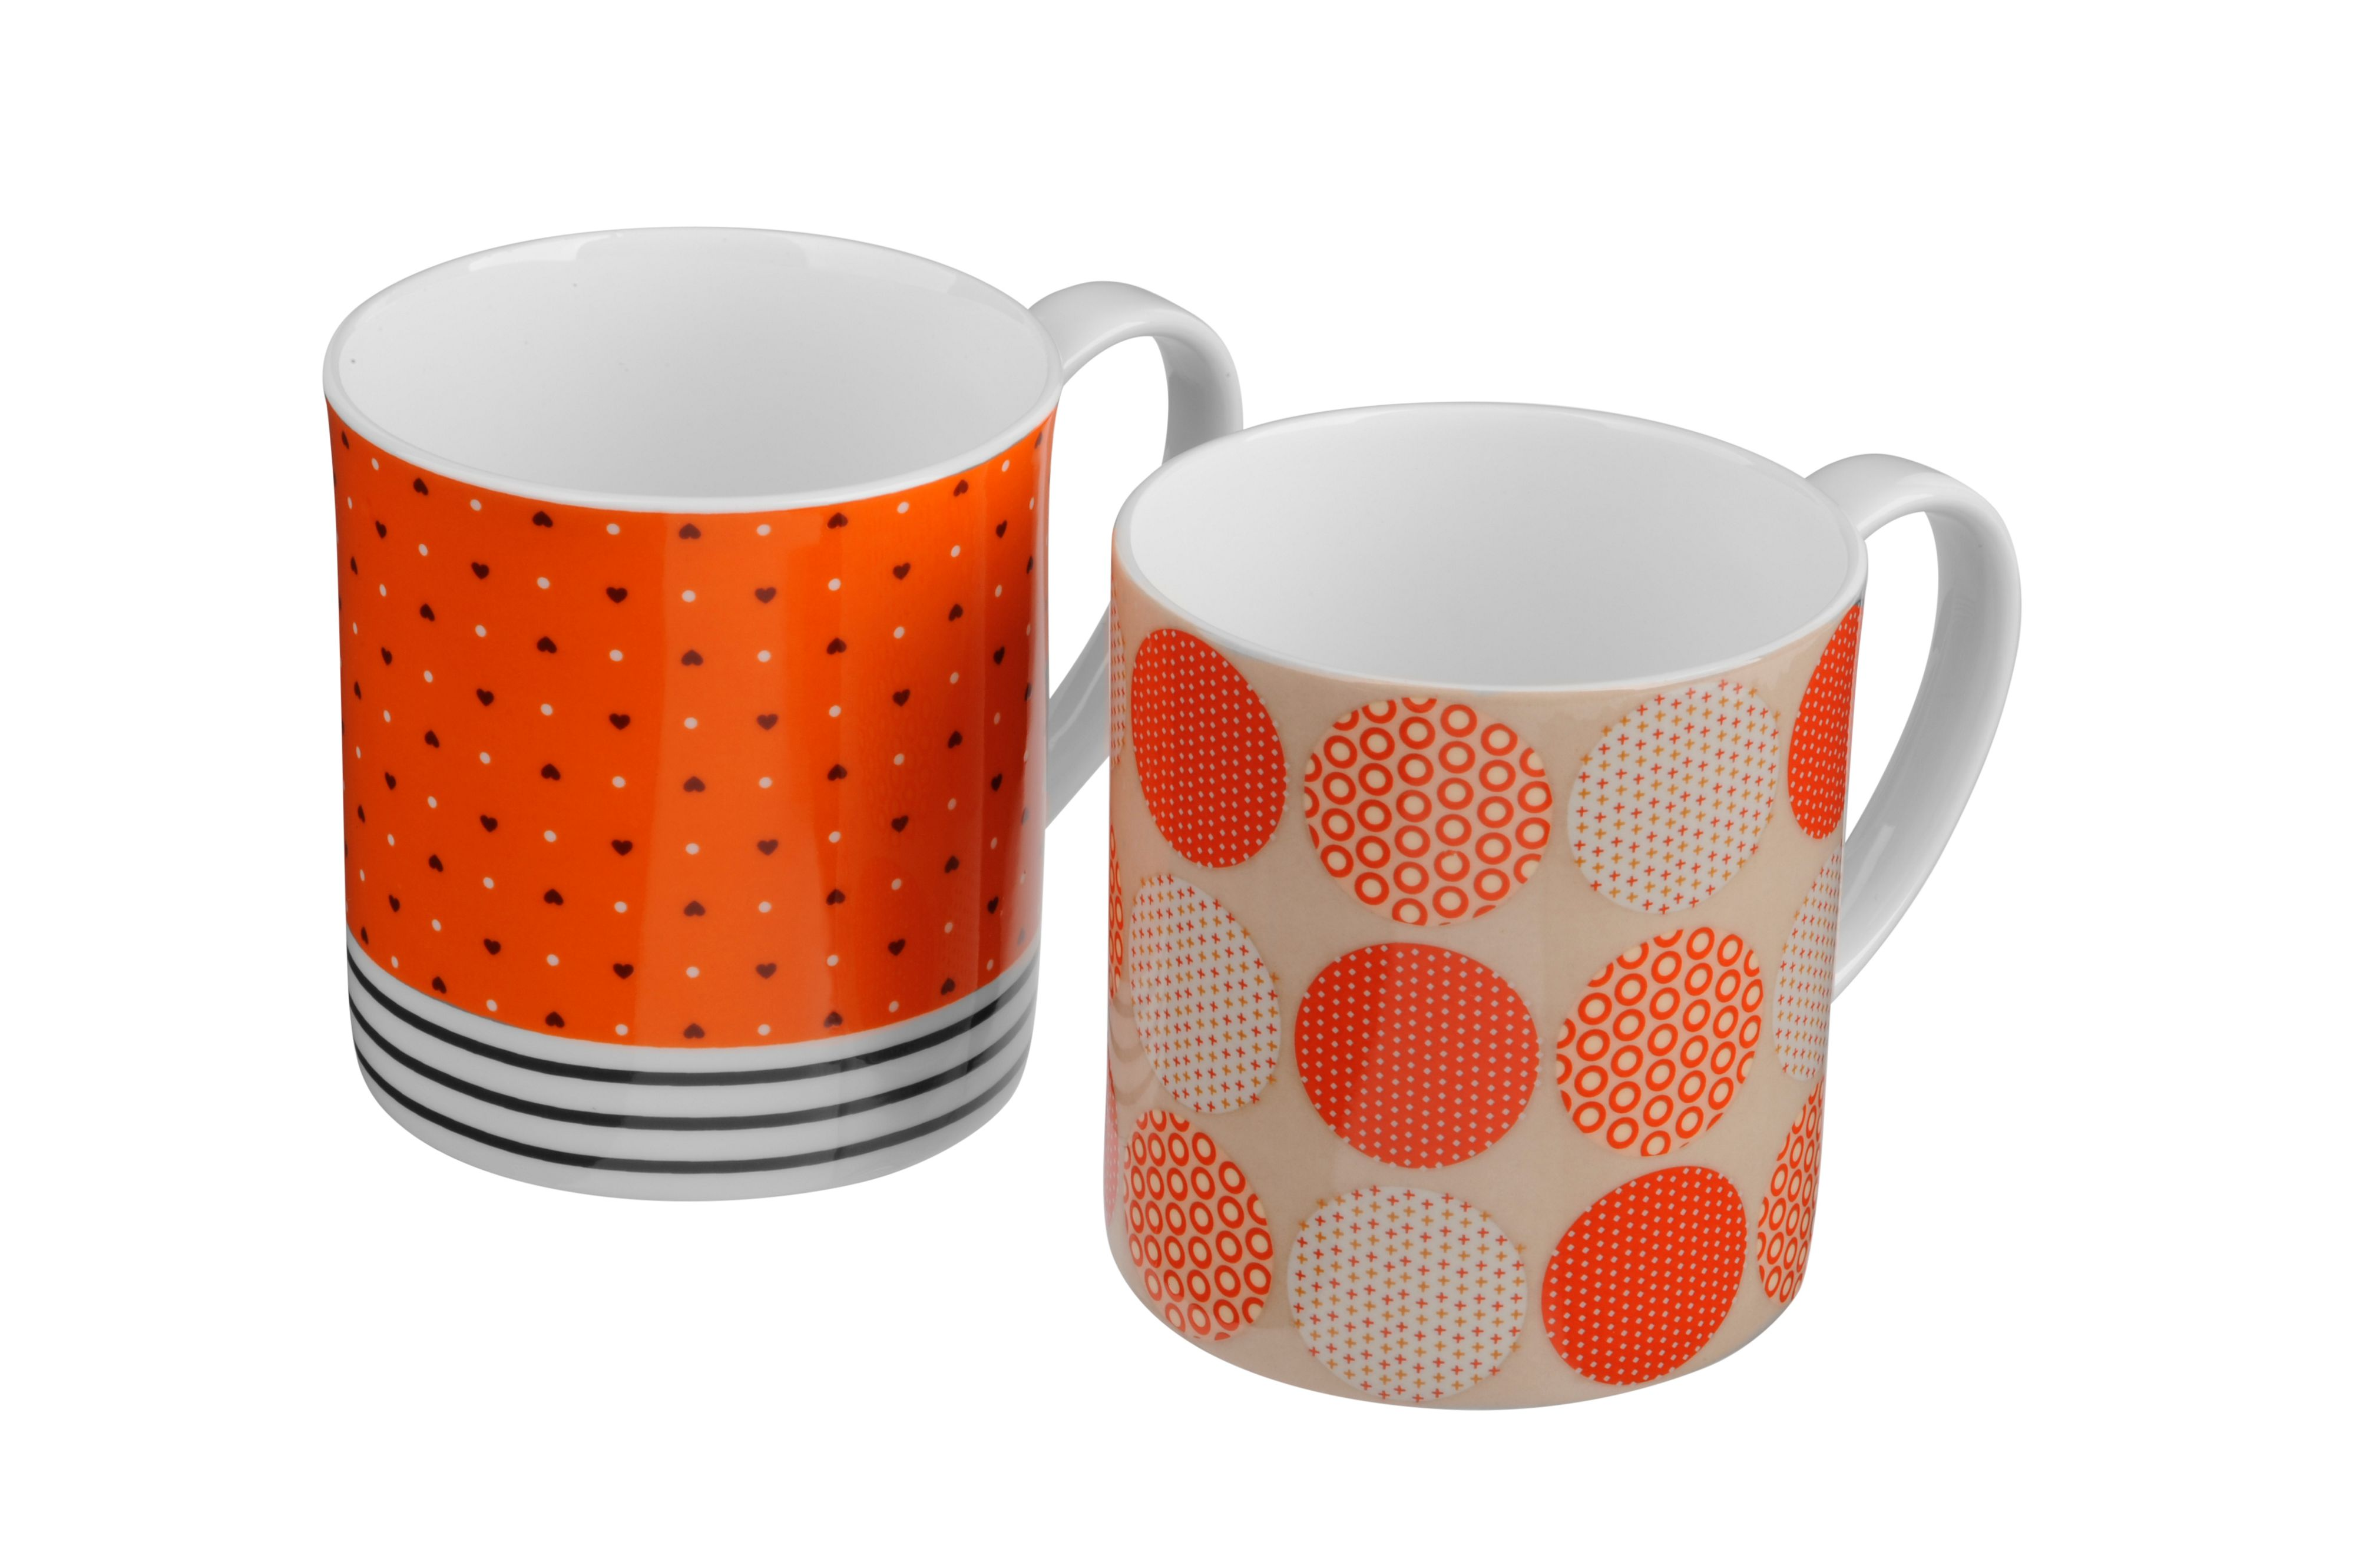 Pair of bone china Rio mugs